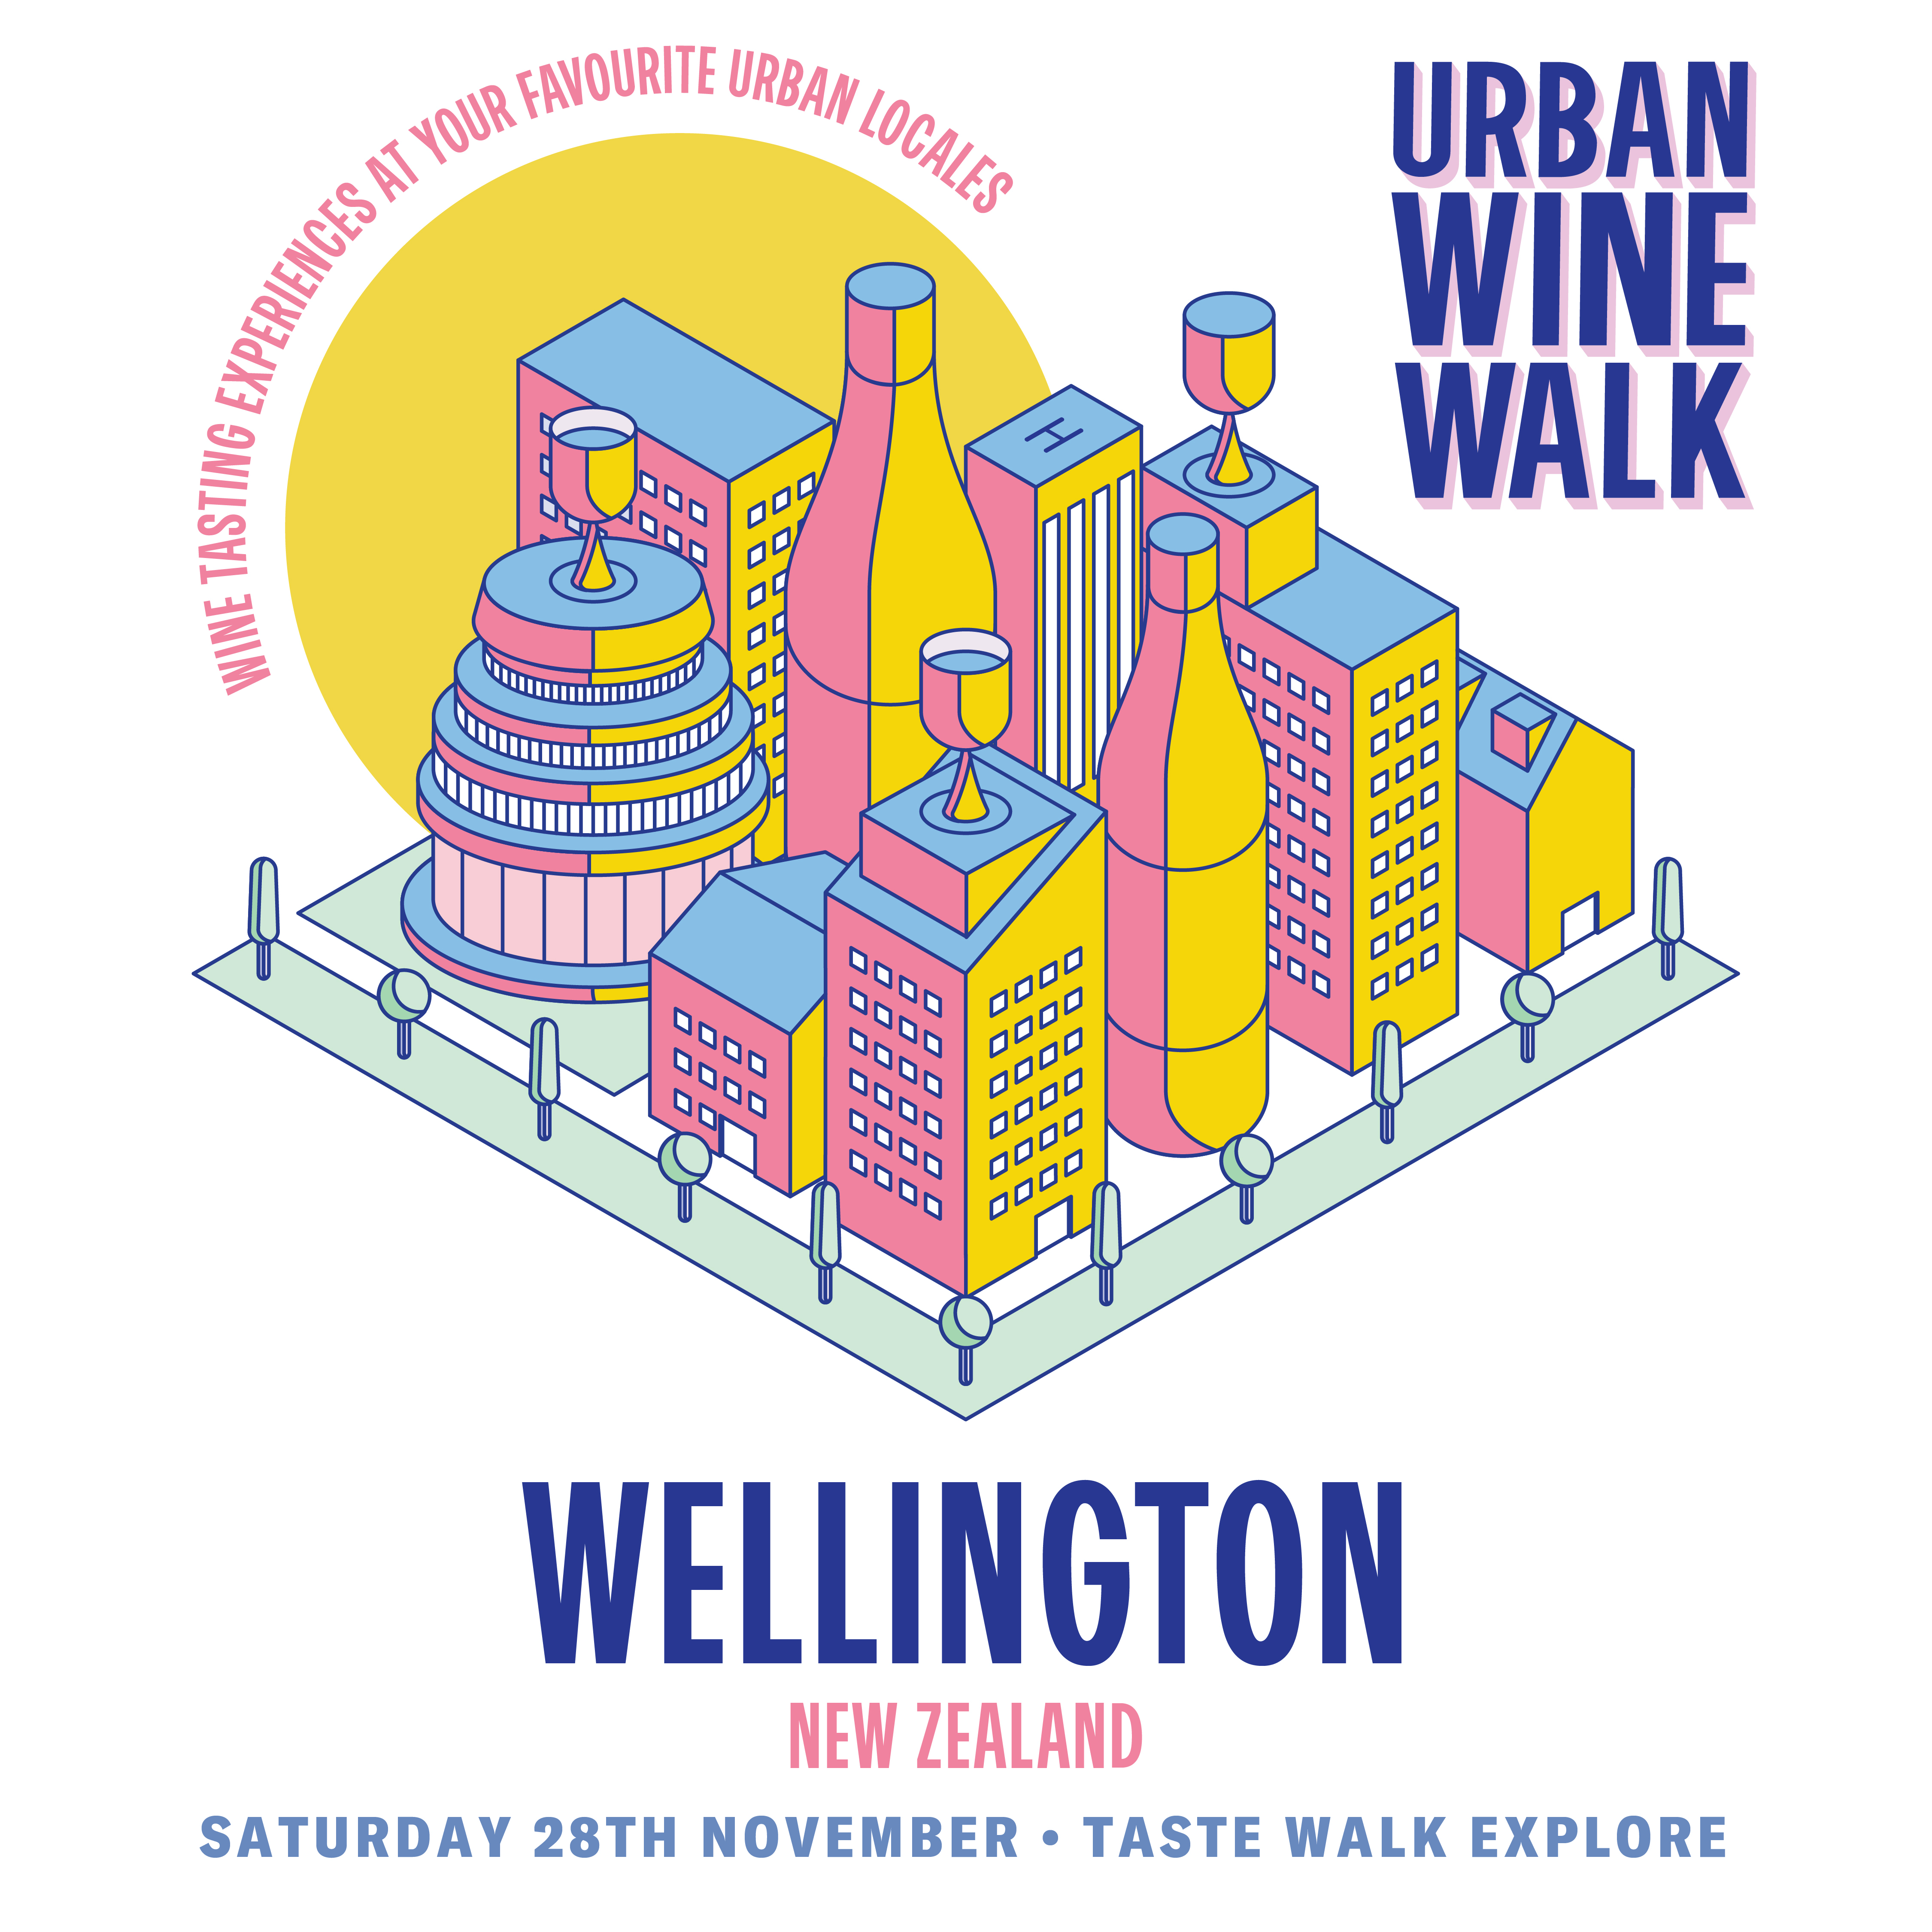 urban-wine-walk-wellington-social-artwork.jpg